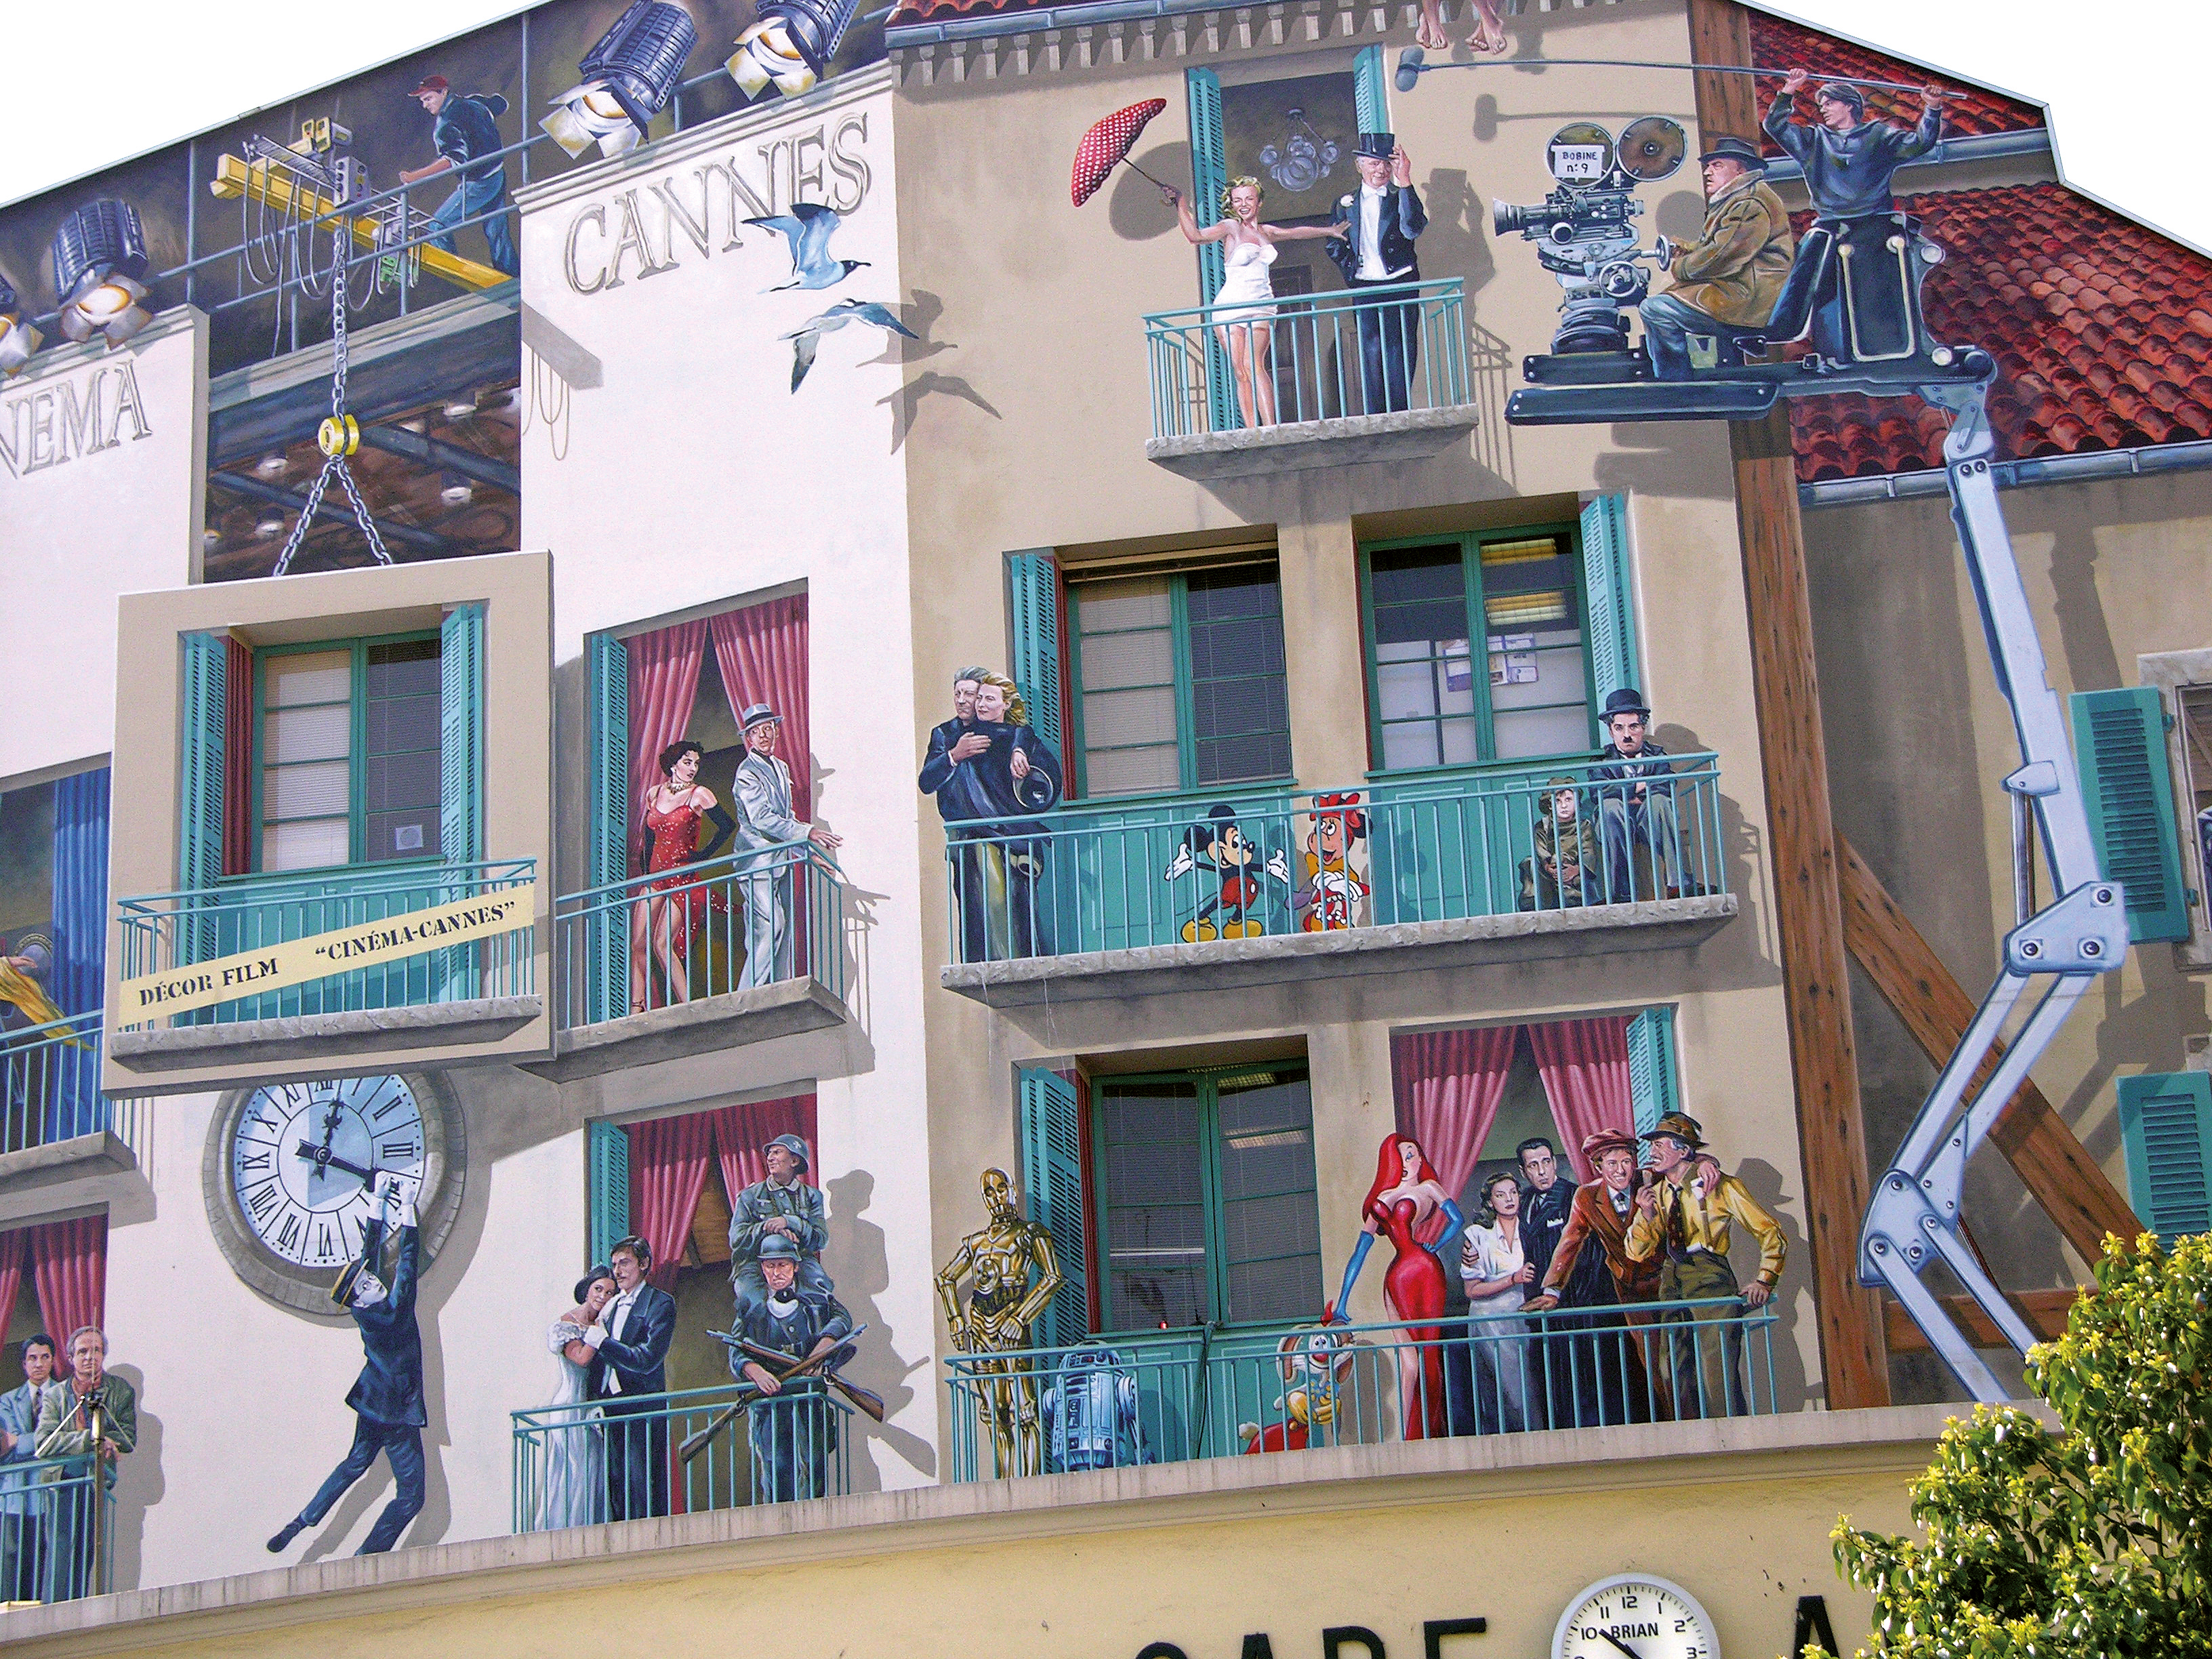 I murales Cannes